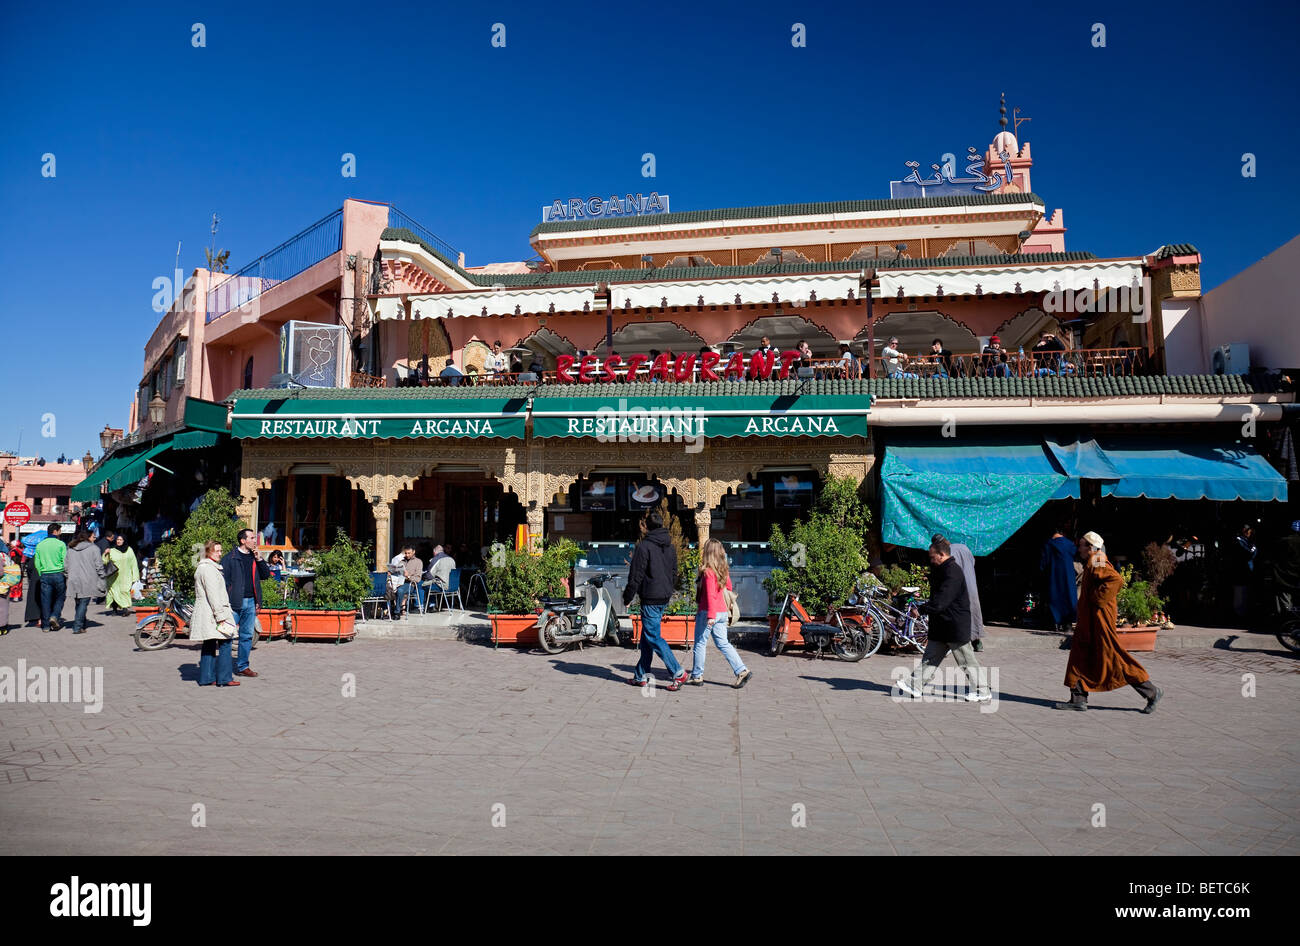 Place jemaa el fna marrakech check out place jemaa el fna for Argana moroccan cuisine